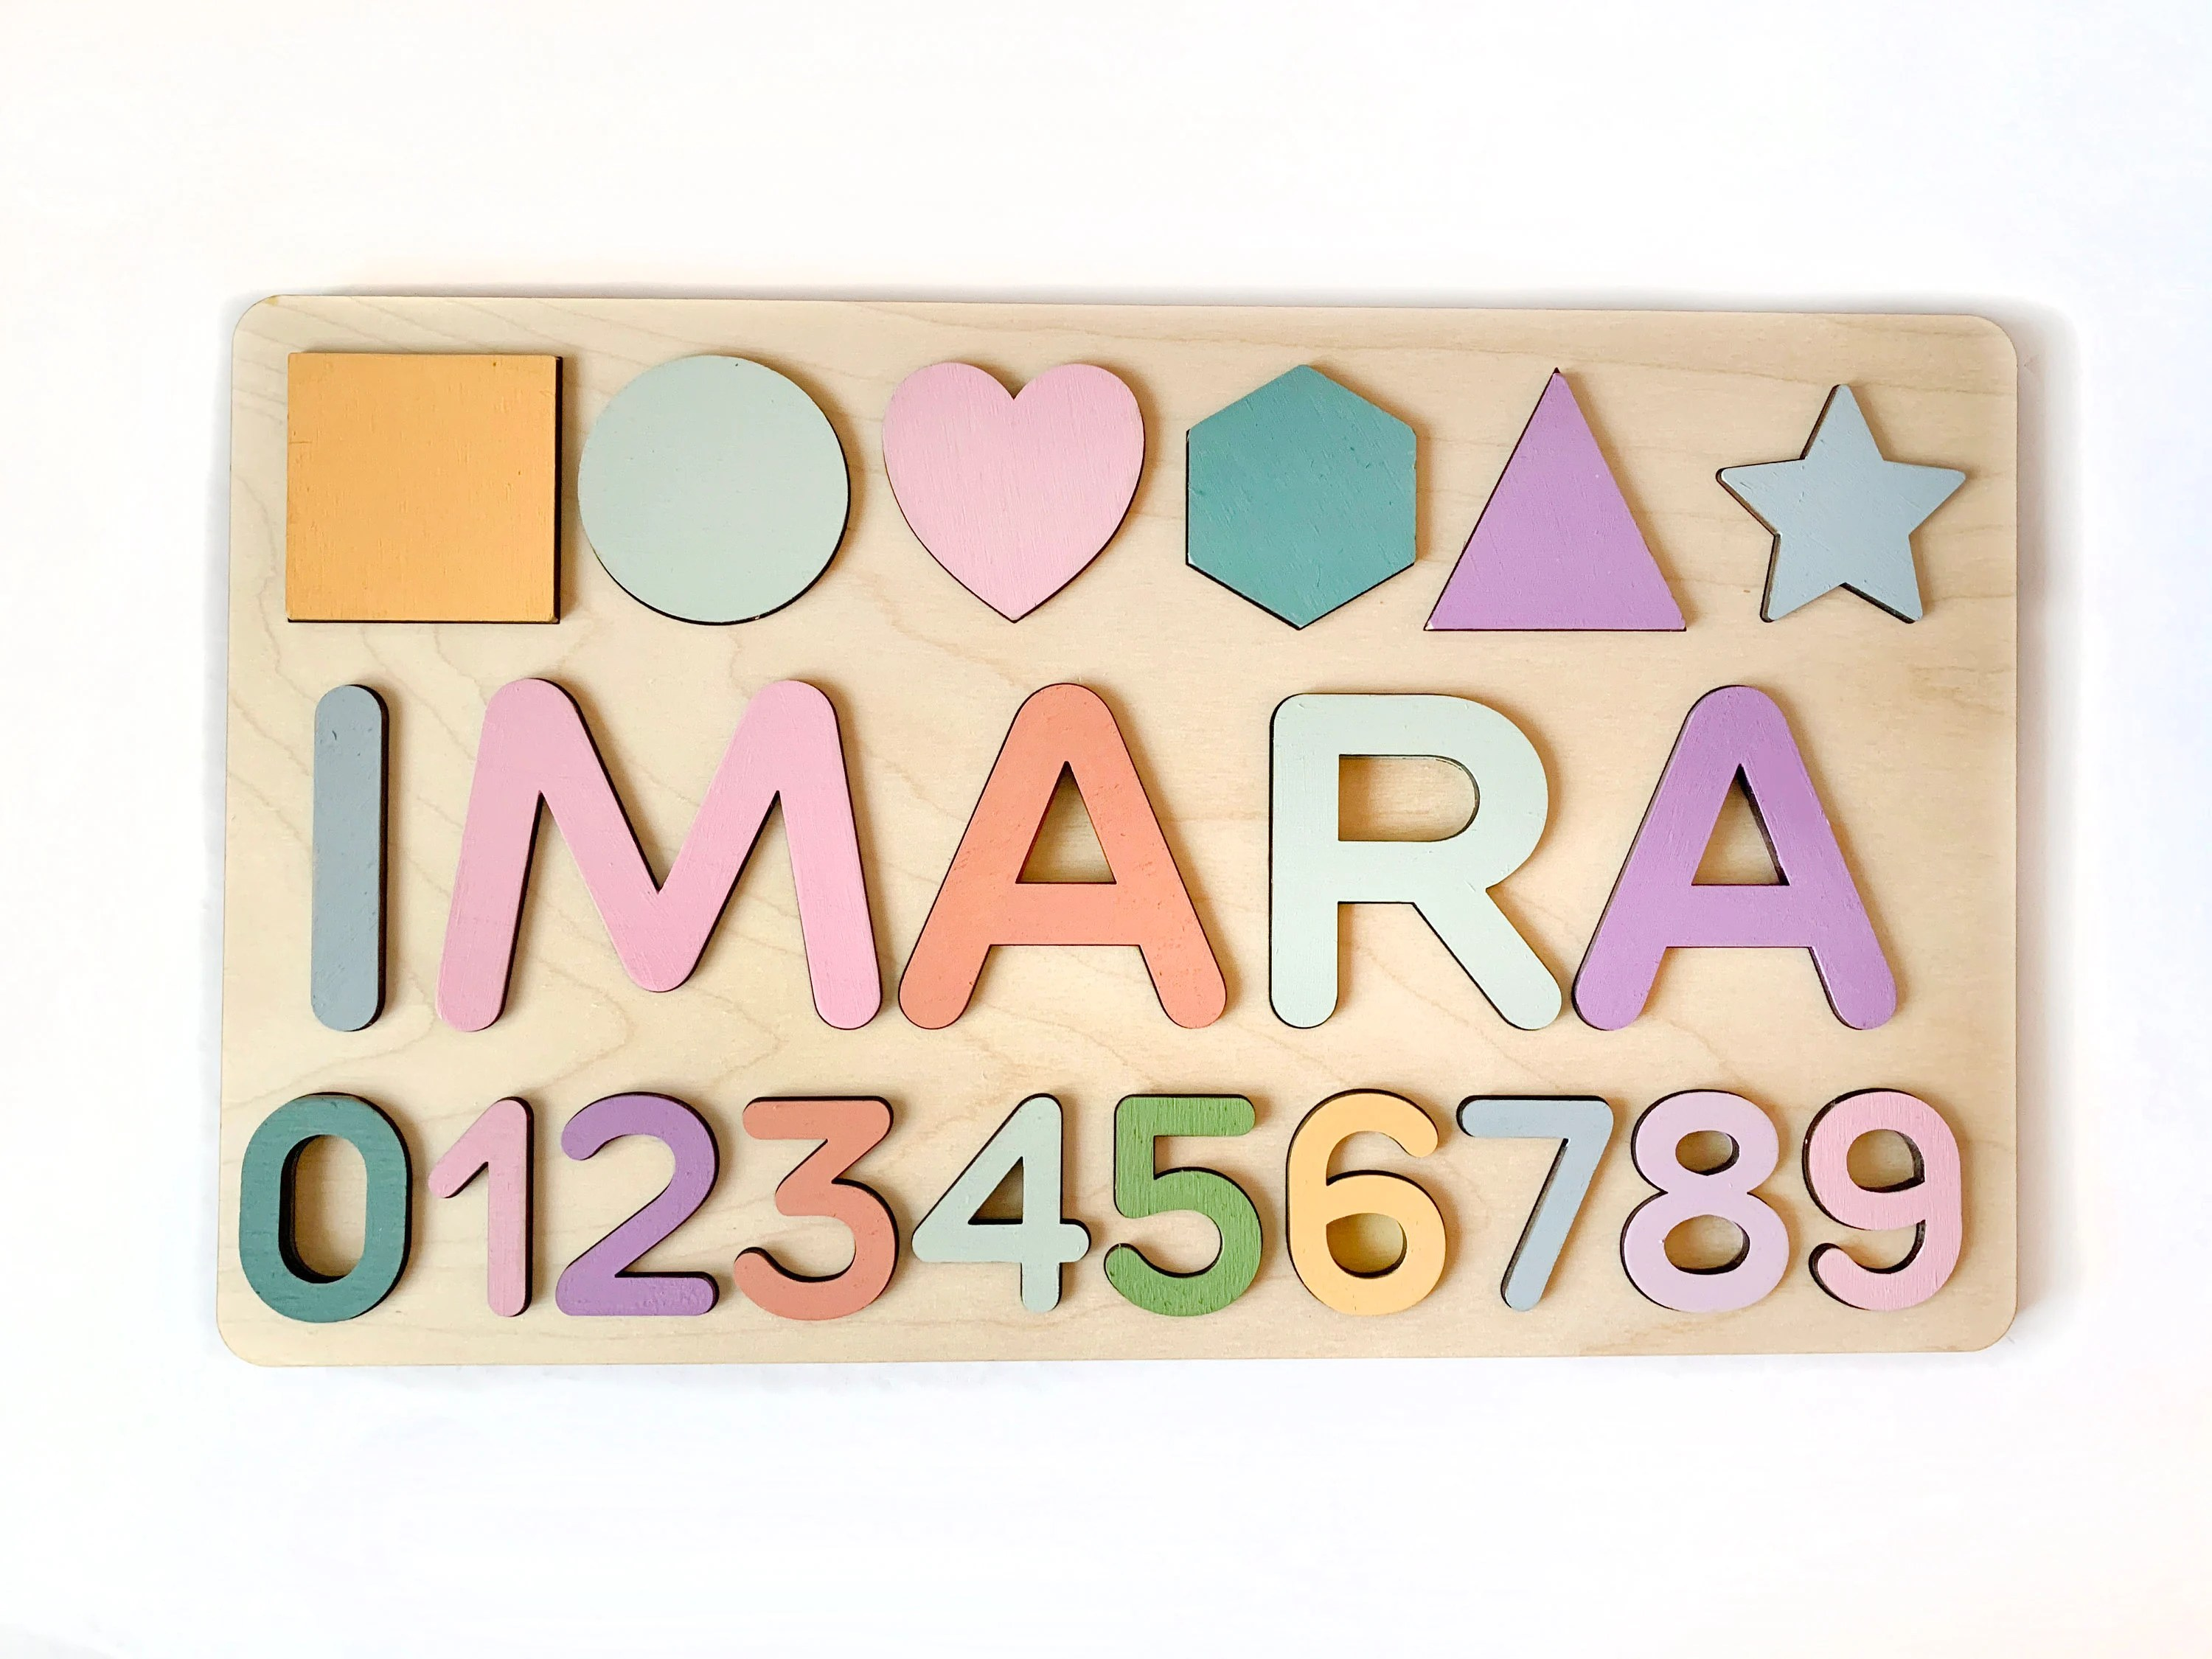 More colours                                                                                Large Custom wooden Name Puzzle with basic shapes and numbers for toddlers boys and girls, colored background star, triangle, heart                                                                THECRAFTPEG         From shop THECRAFTPEG                               5 out of 5 stars                                                                                                                                                                                                                                                          (31)                 31 reviews                                                                                   Sale Price CA$71.60                                                                   CA$71.60                                                                             CA$89.50                                                              Original Price CA$89.50                                                                                               (20% off)                                                                                                                                FREE delivery